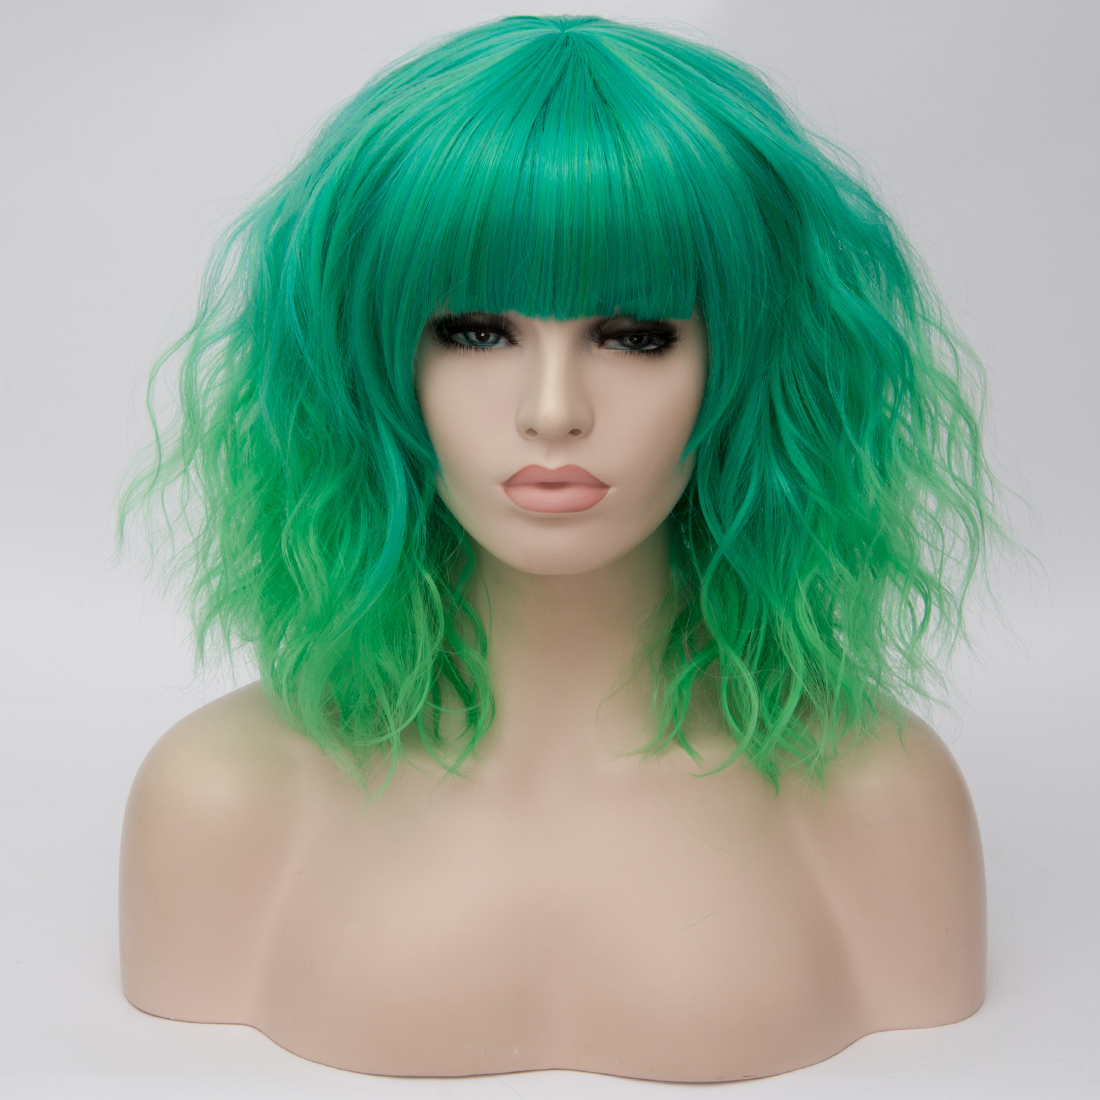 H78e824e1231c4914890a99a97537ed796 - Similler Short Synthetic Wig for Women Cosplay Curly Hair Heat Resistance Ombre Color Blue Purple Pink Green Orange Two Tones